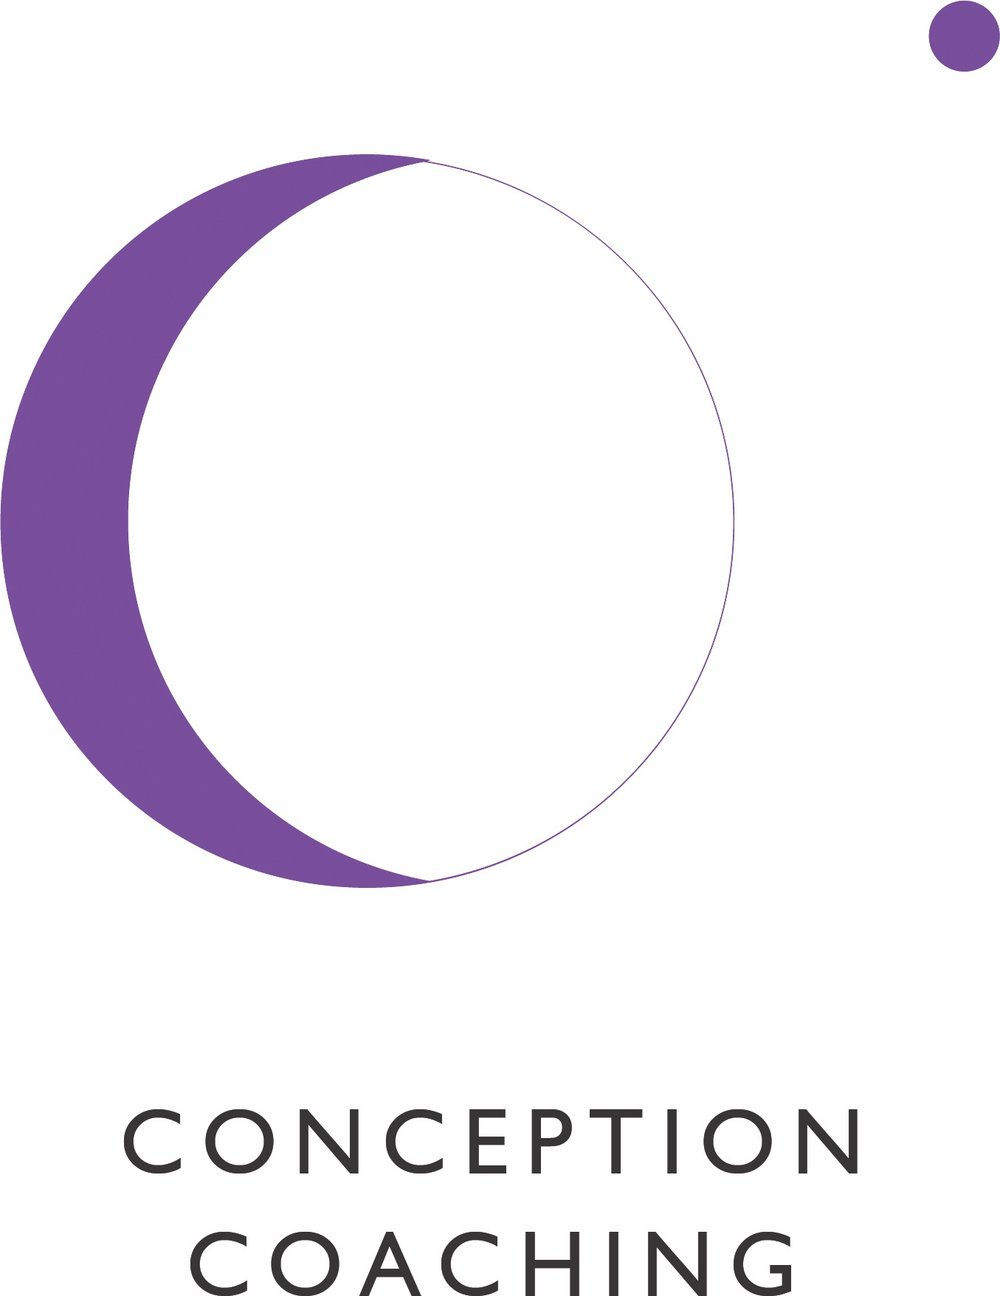 Conception coaching is a simple system to help you get pregnant